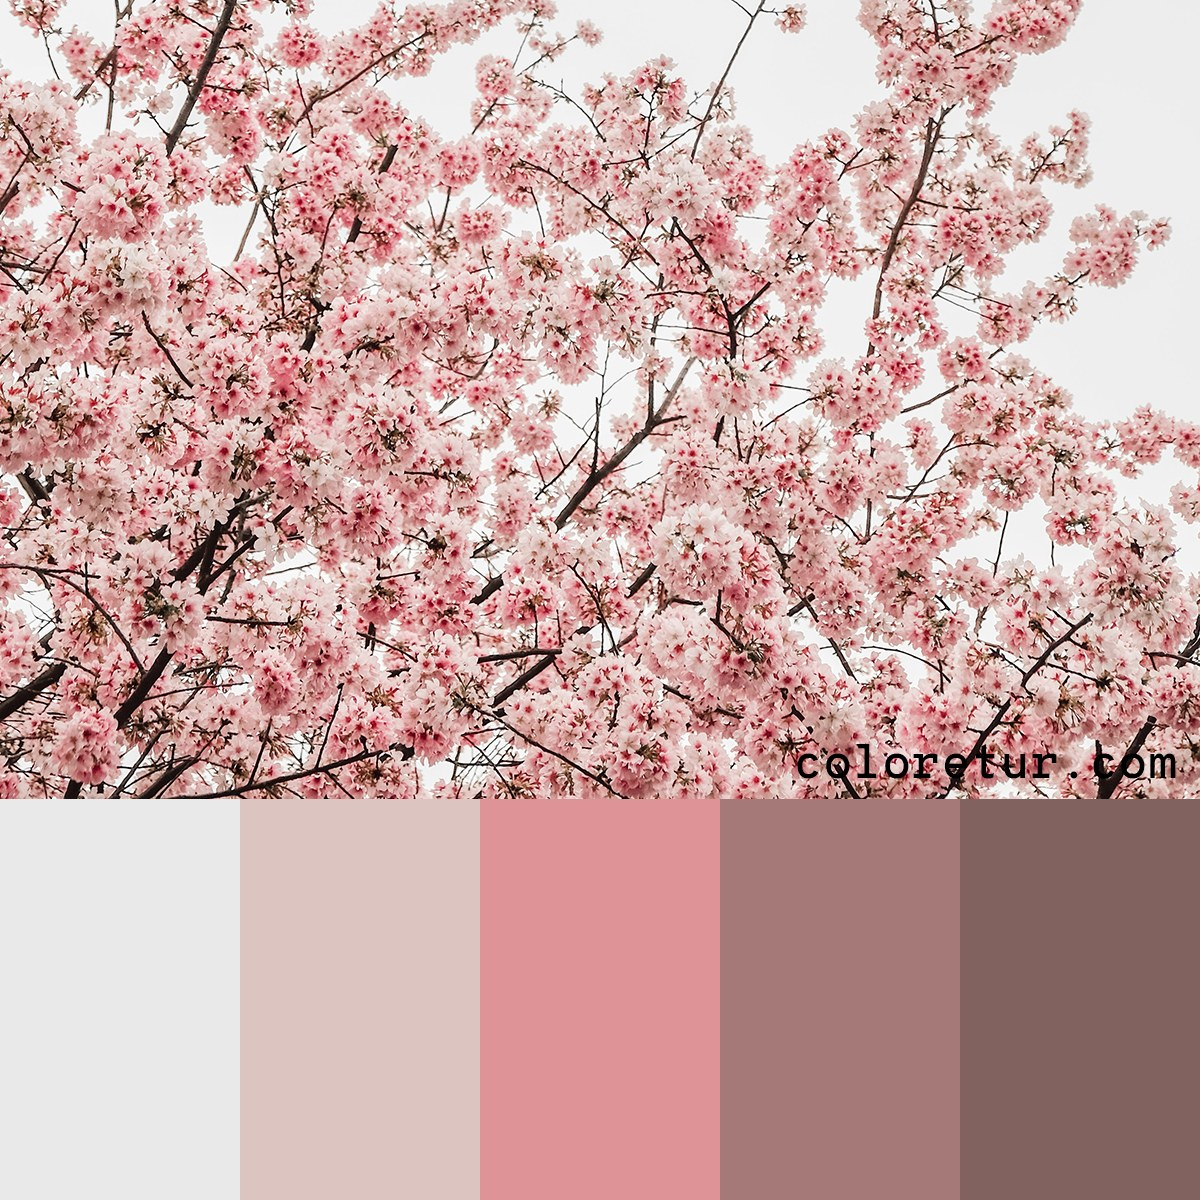 Cherry blossom colour palette